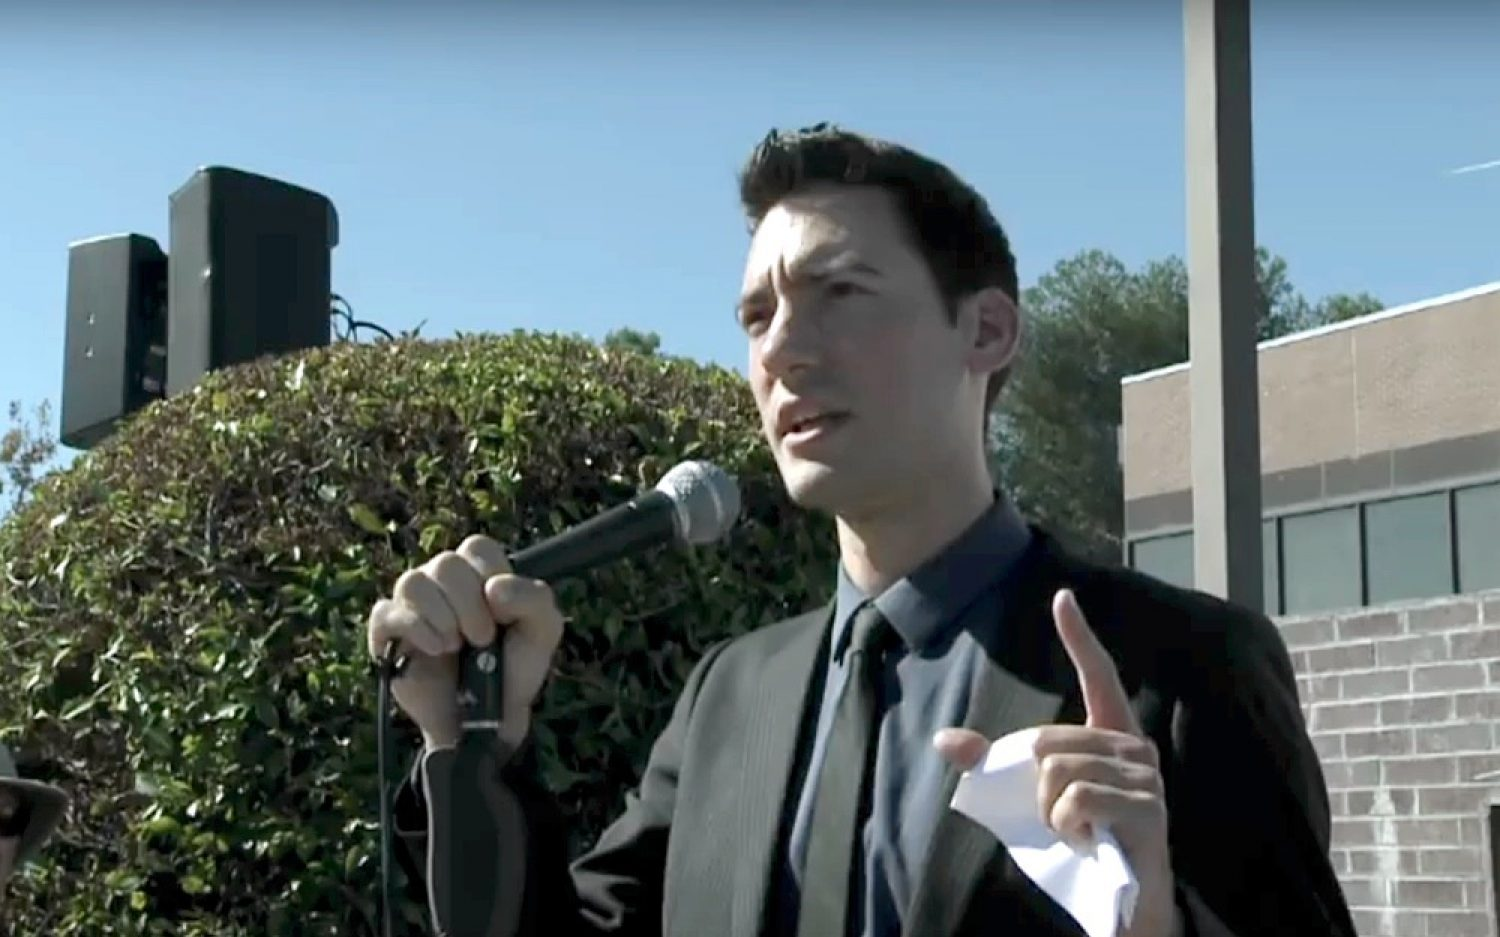 David Daleiden and the abortion Goliath